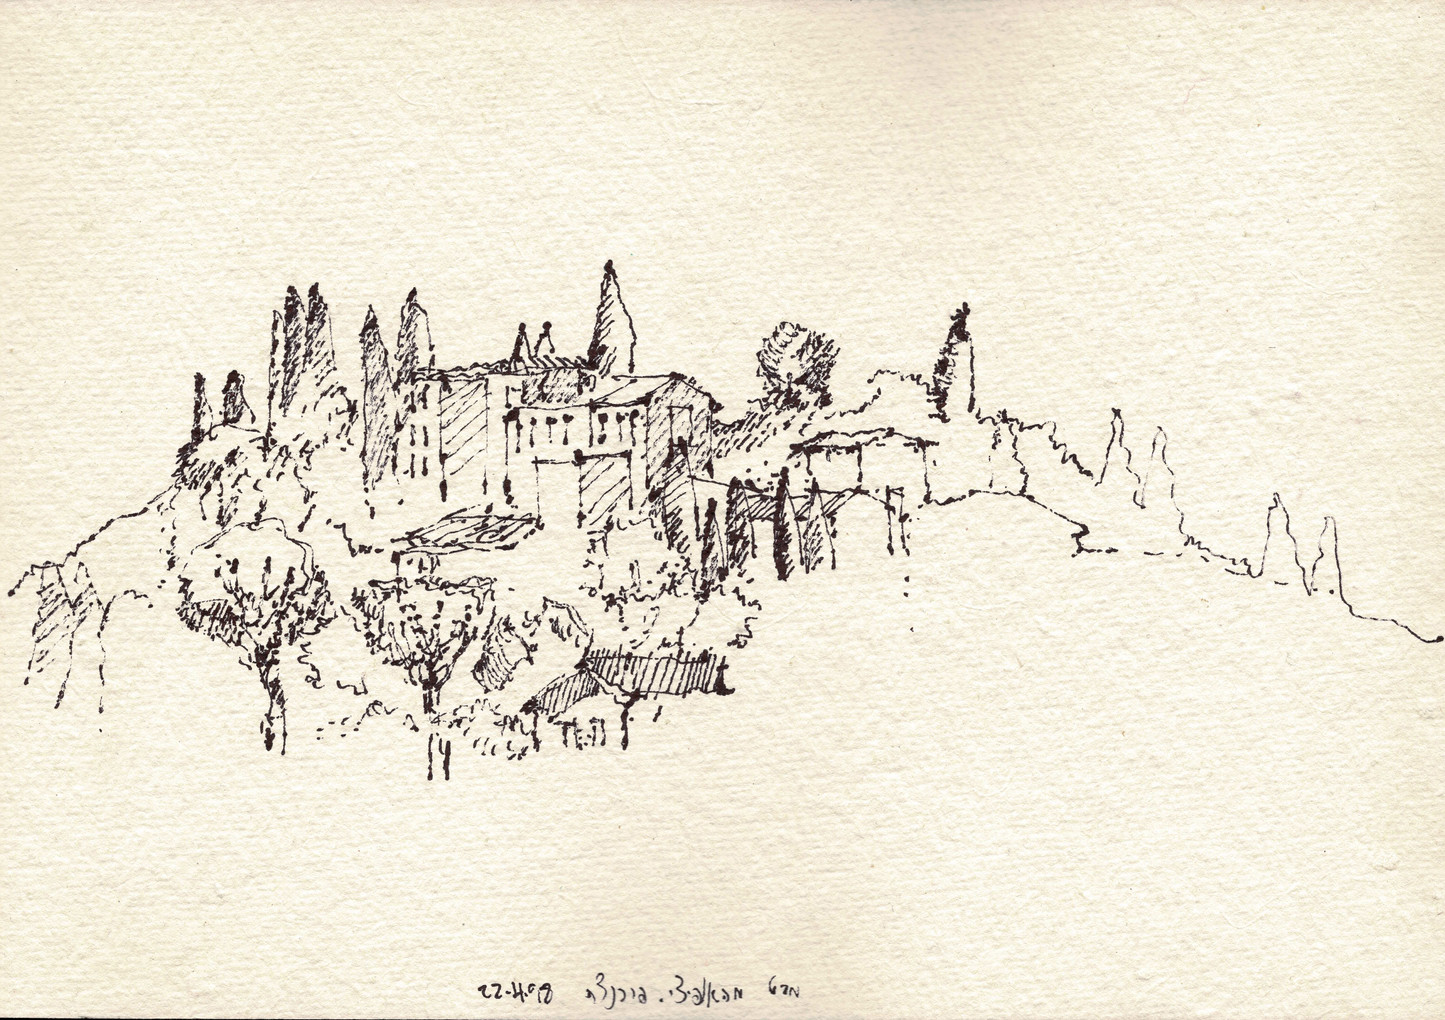 Firenze, 1998, ink on paper, 18X26